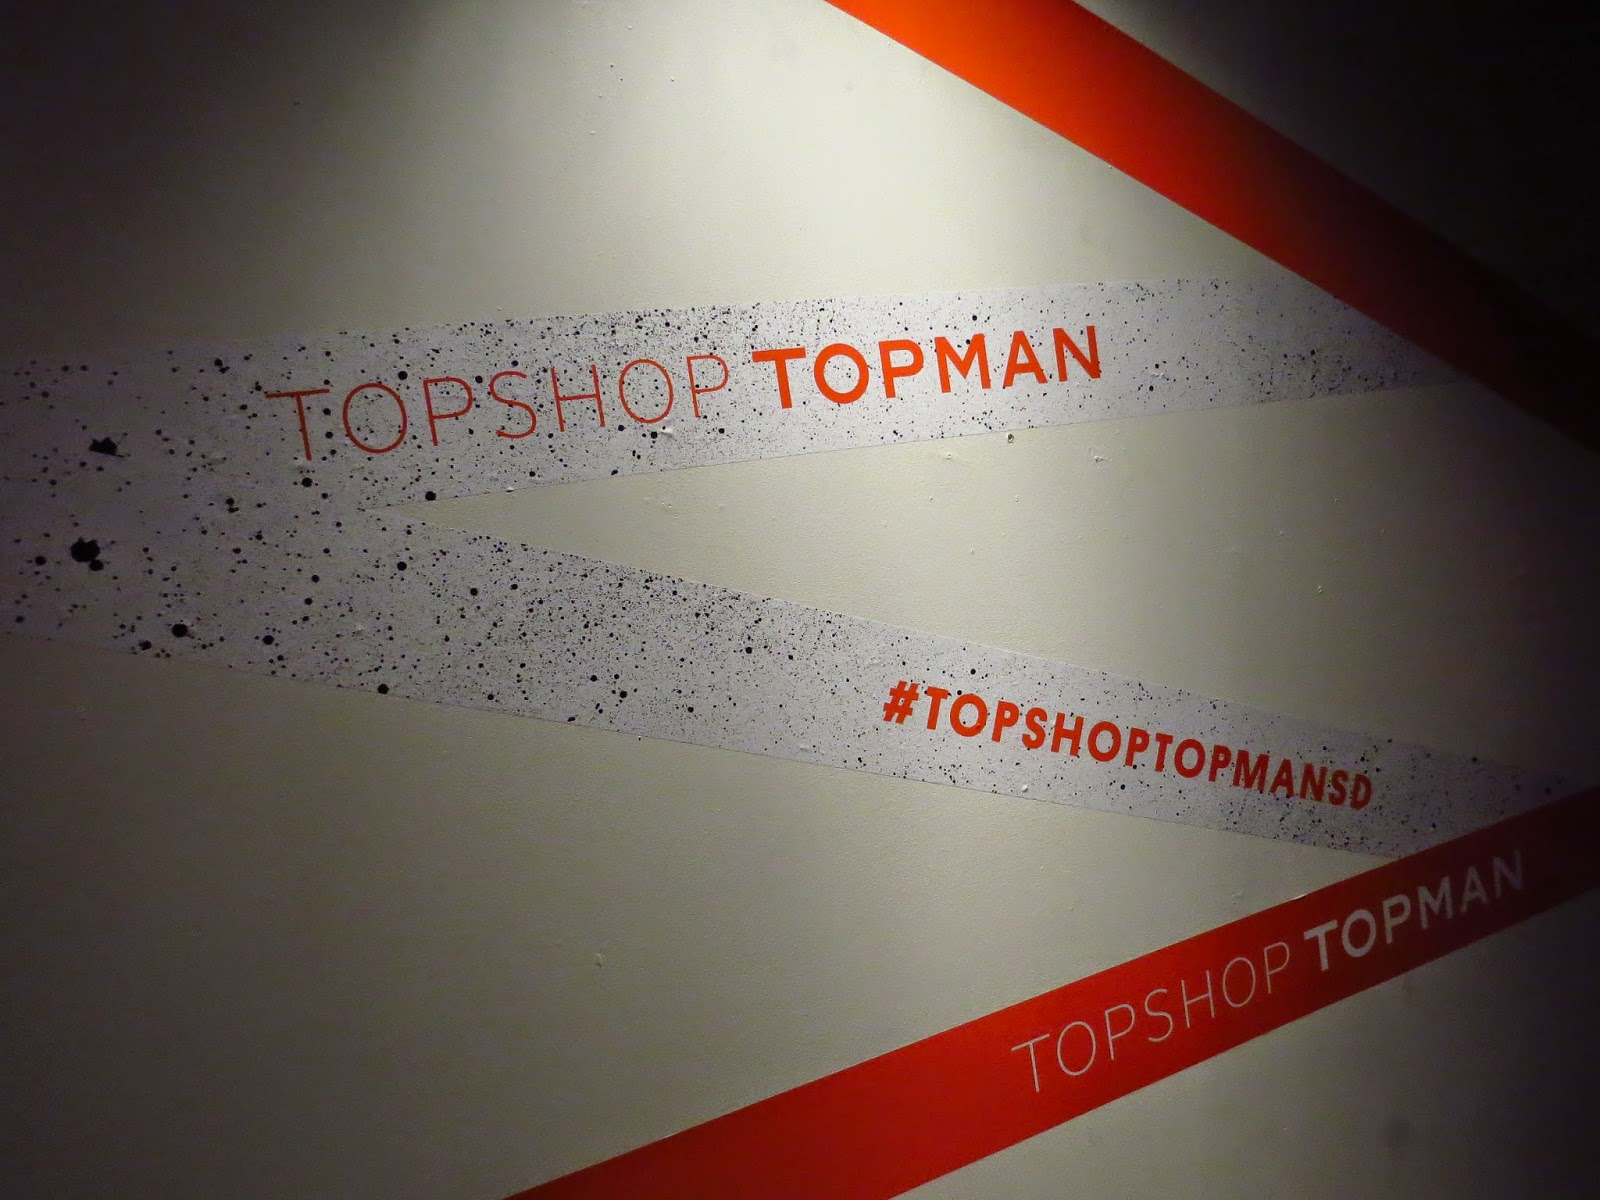 Topshop San Diego Launch Party